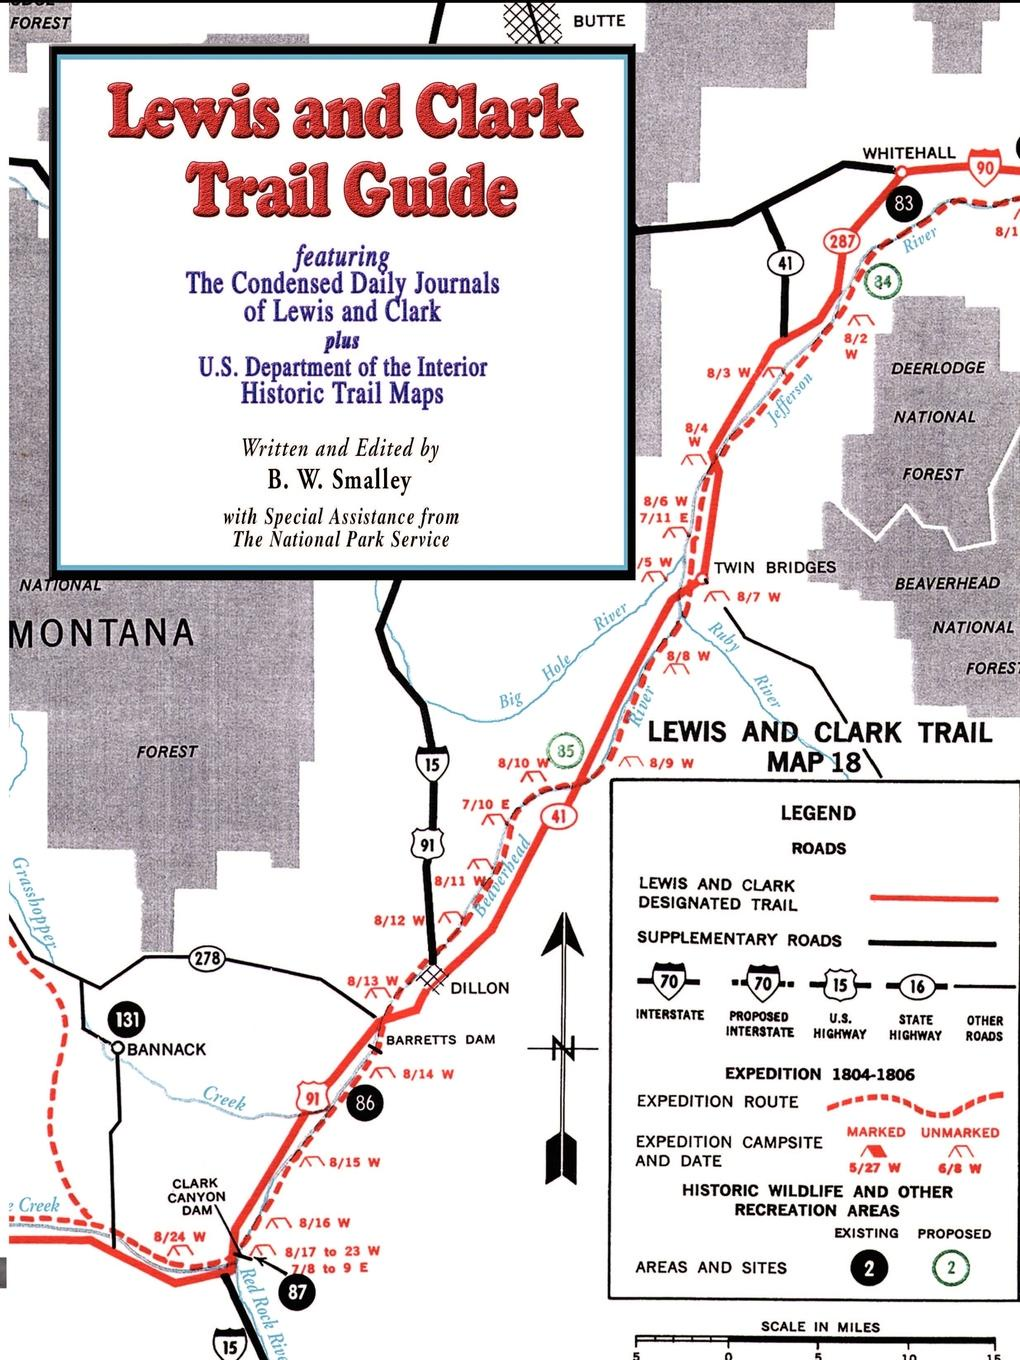 Lewis and Clark Trail Guide. With Documentation of over 400 Lewis and Clark Campsites